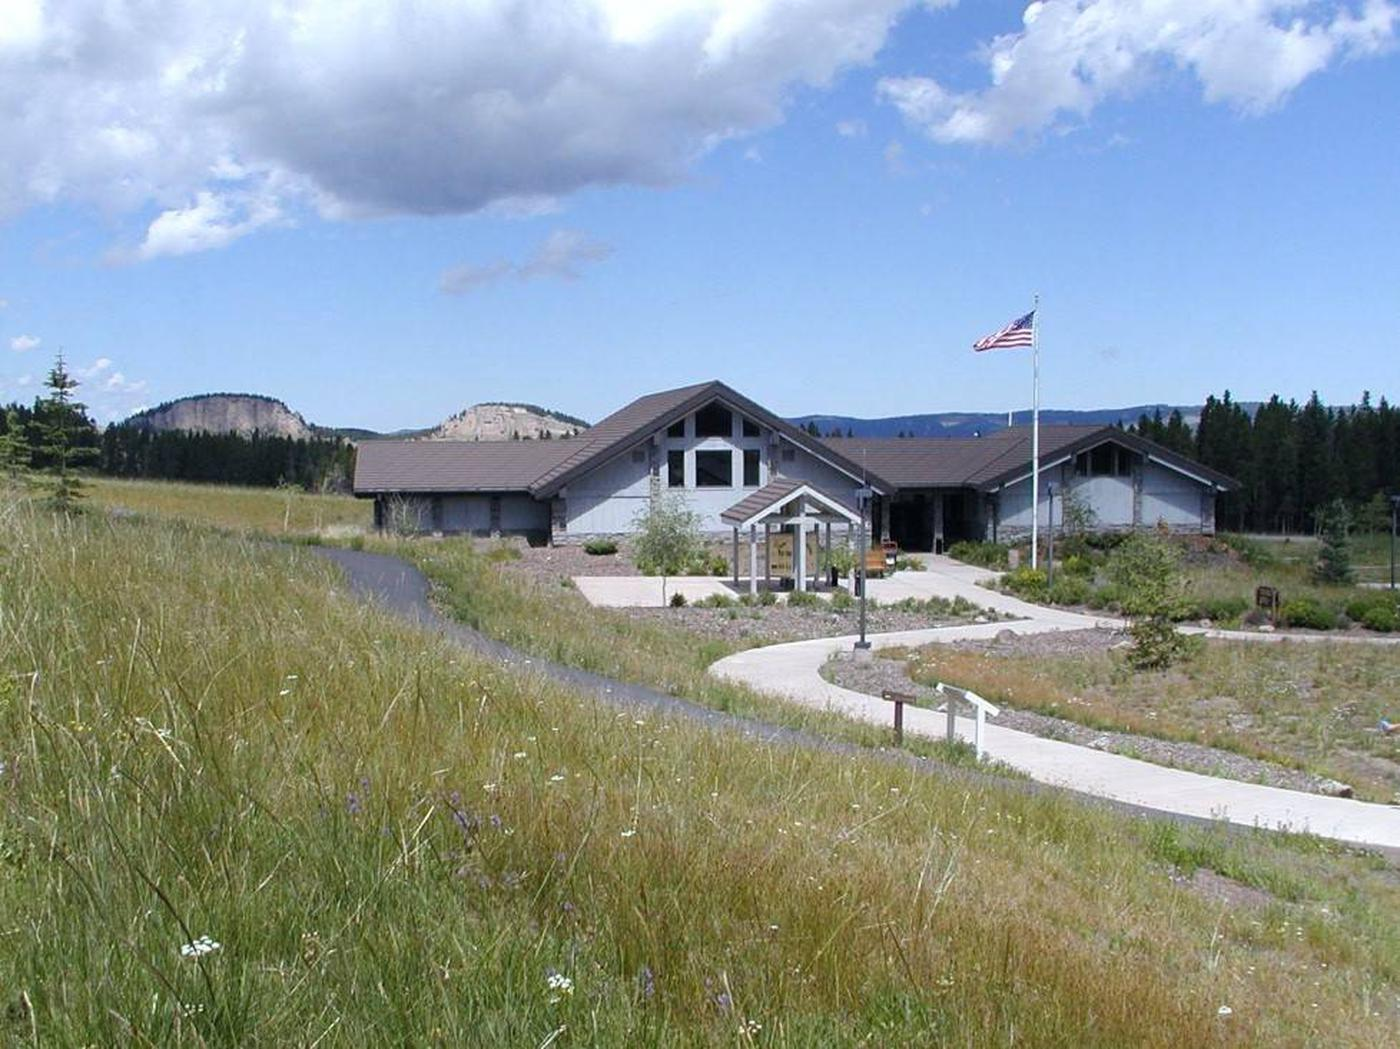 Burgess Junction Visitor Center